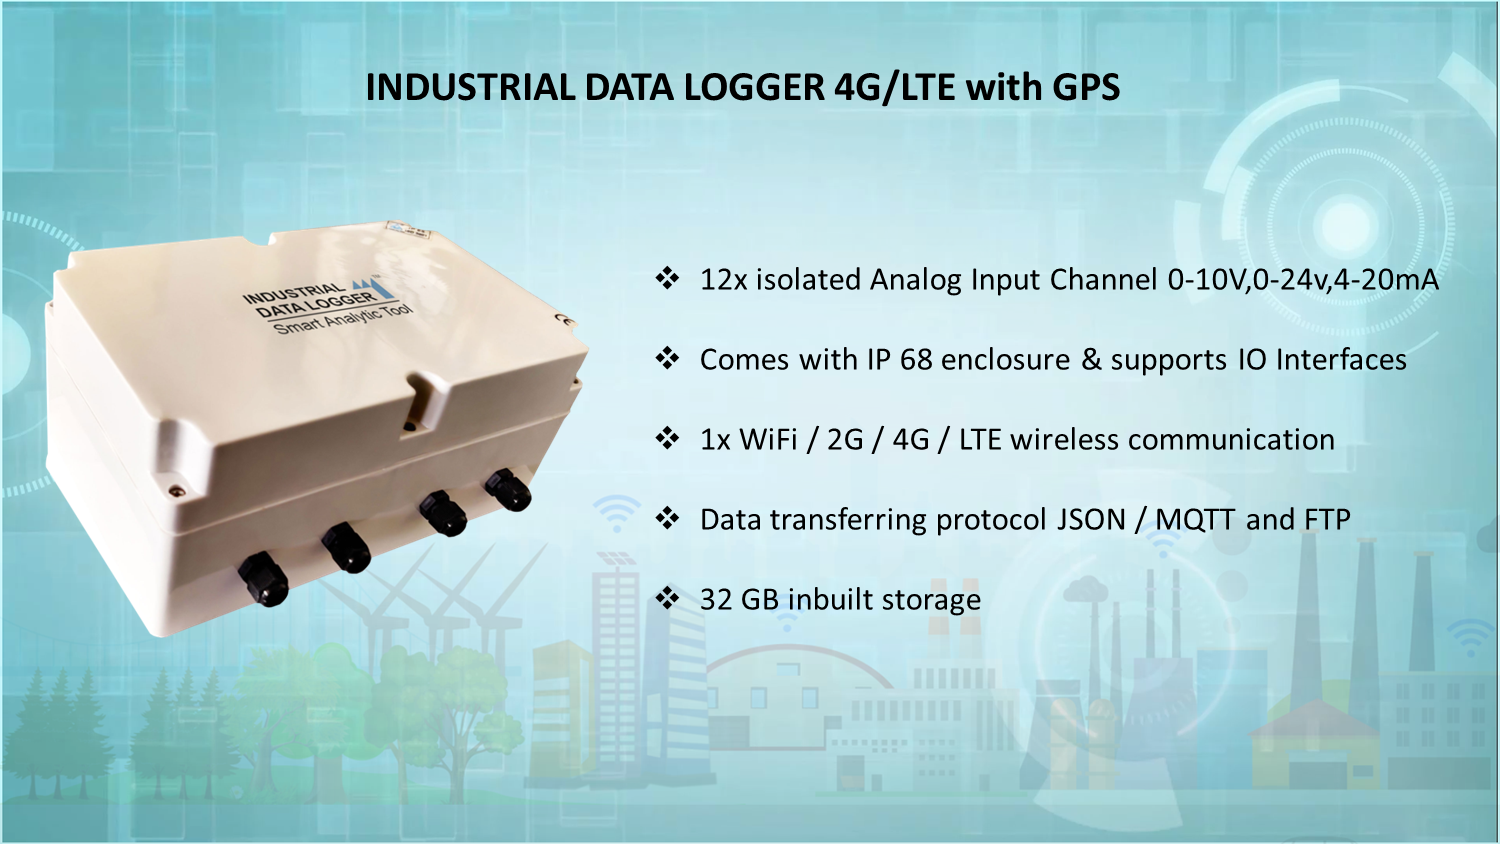 INDUSTRIAL DATA LOGGER 4G/LTE WITH GPS